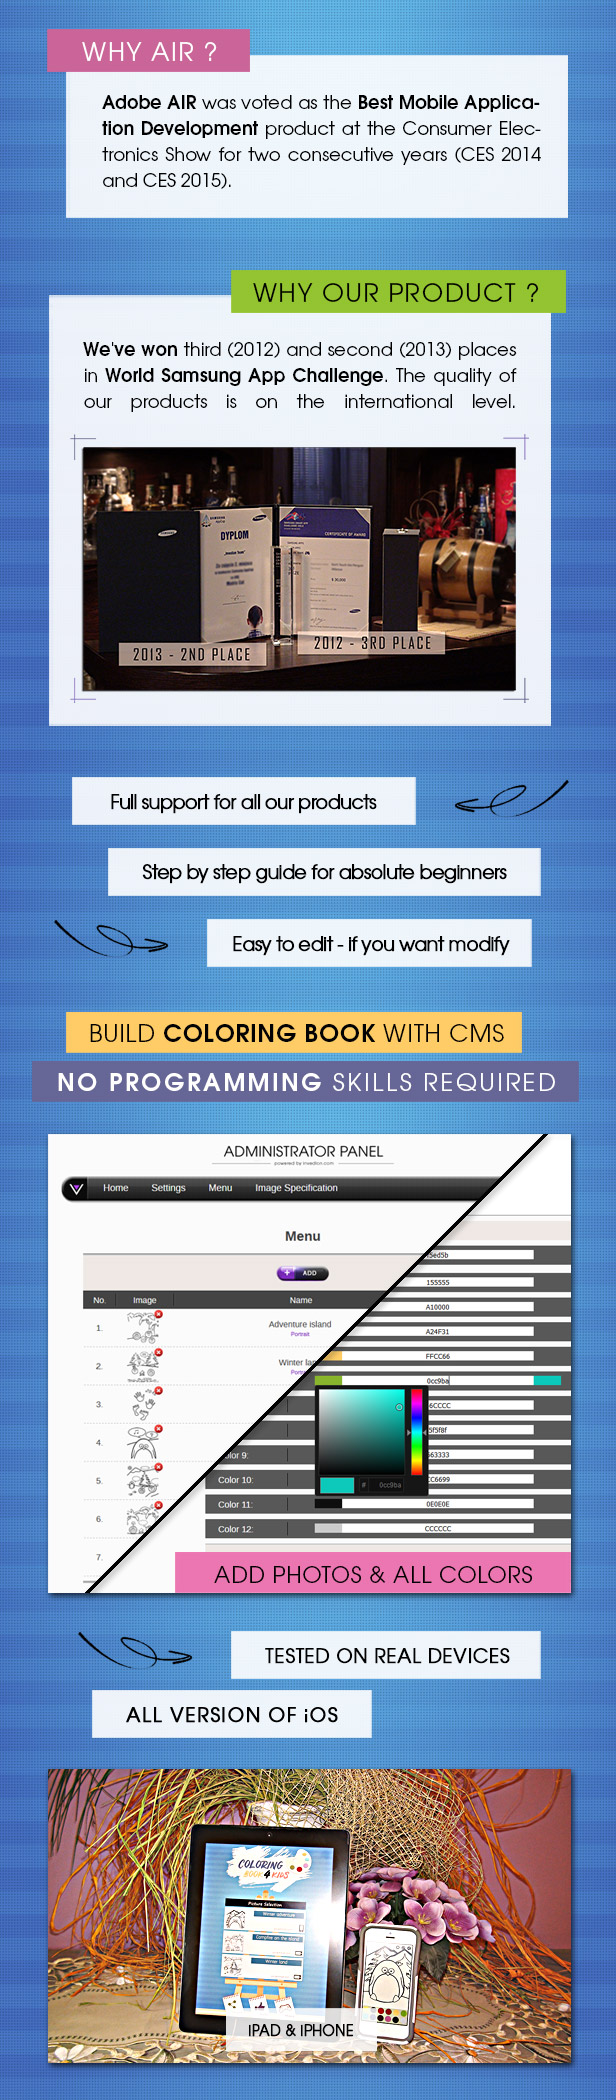 Coloring Book For Kids With CMS & AdMob - iOS - 3